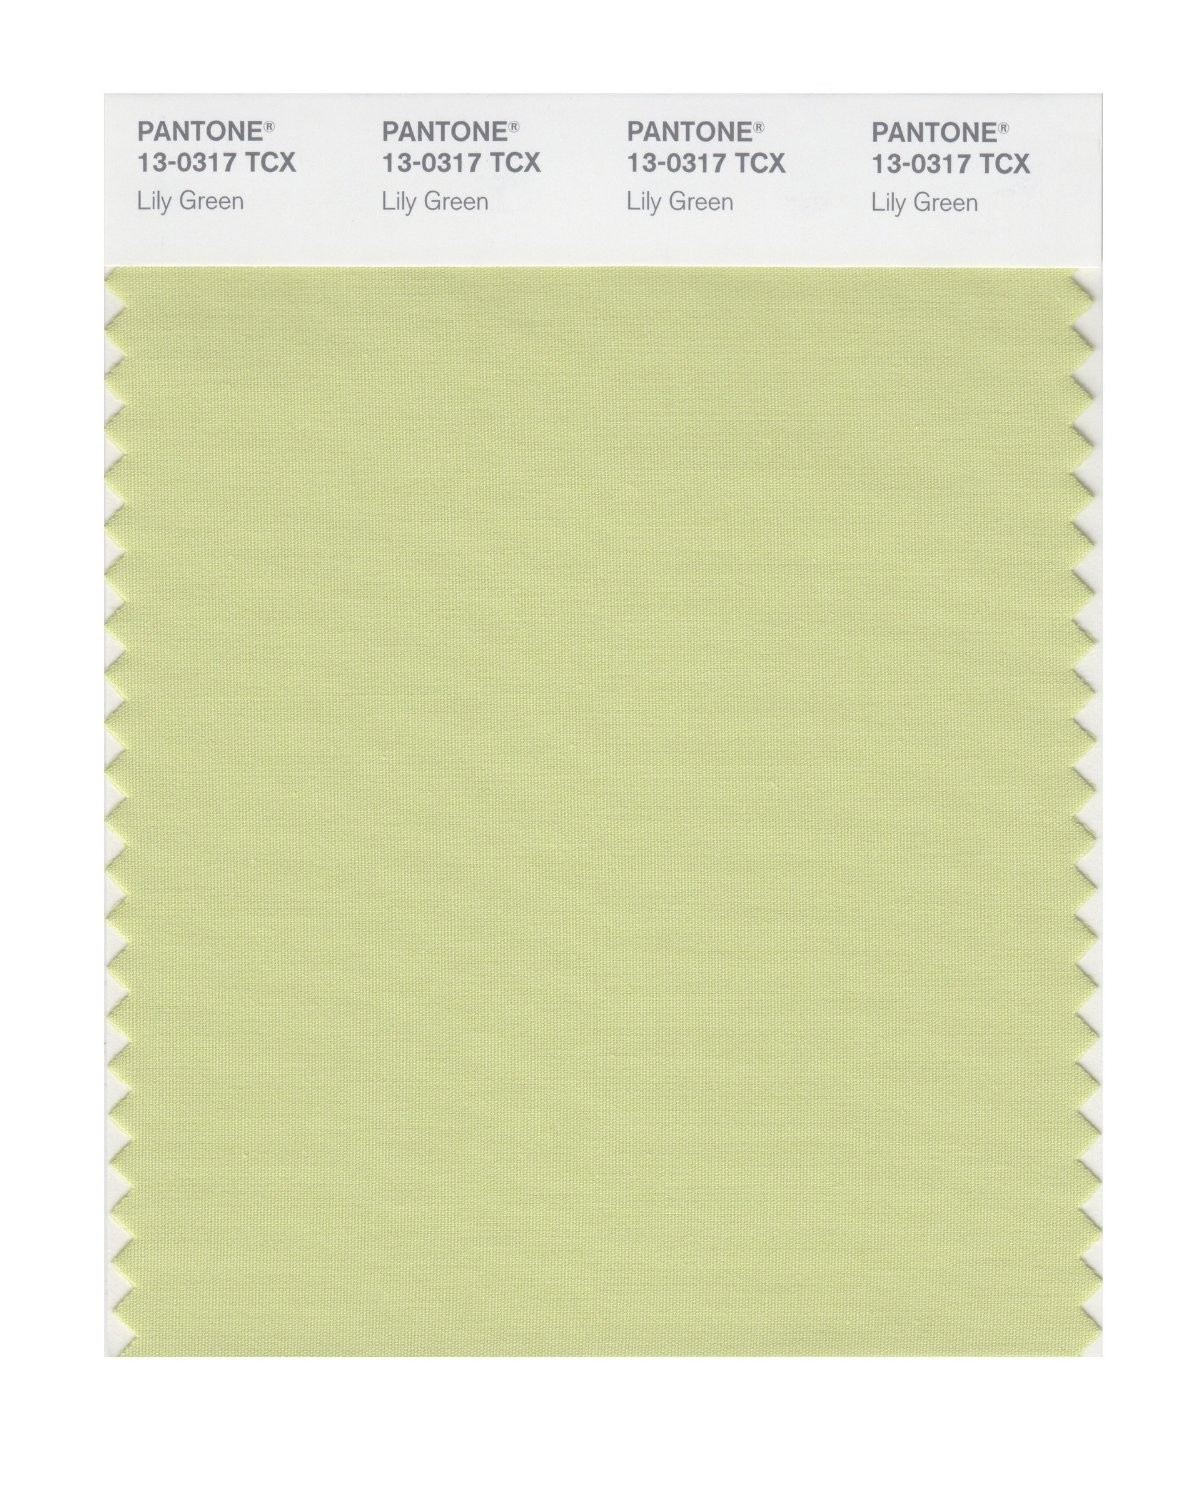 Pantone 13-0317 TCX Swatch Card Lily Green